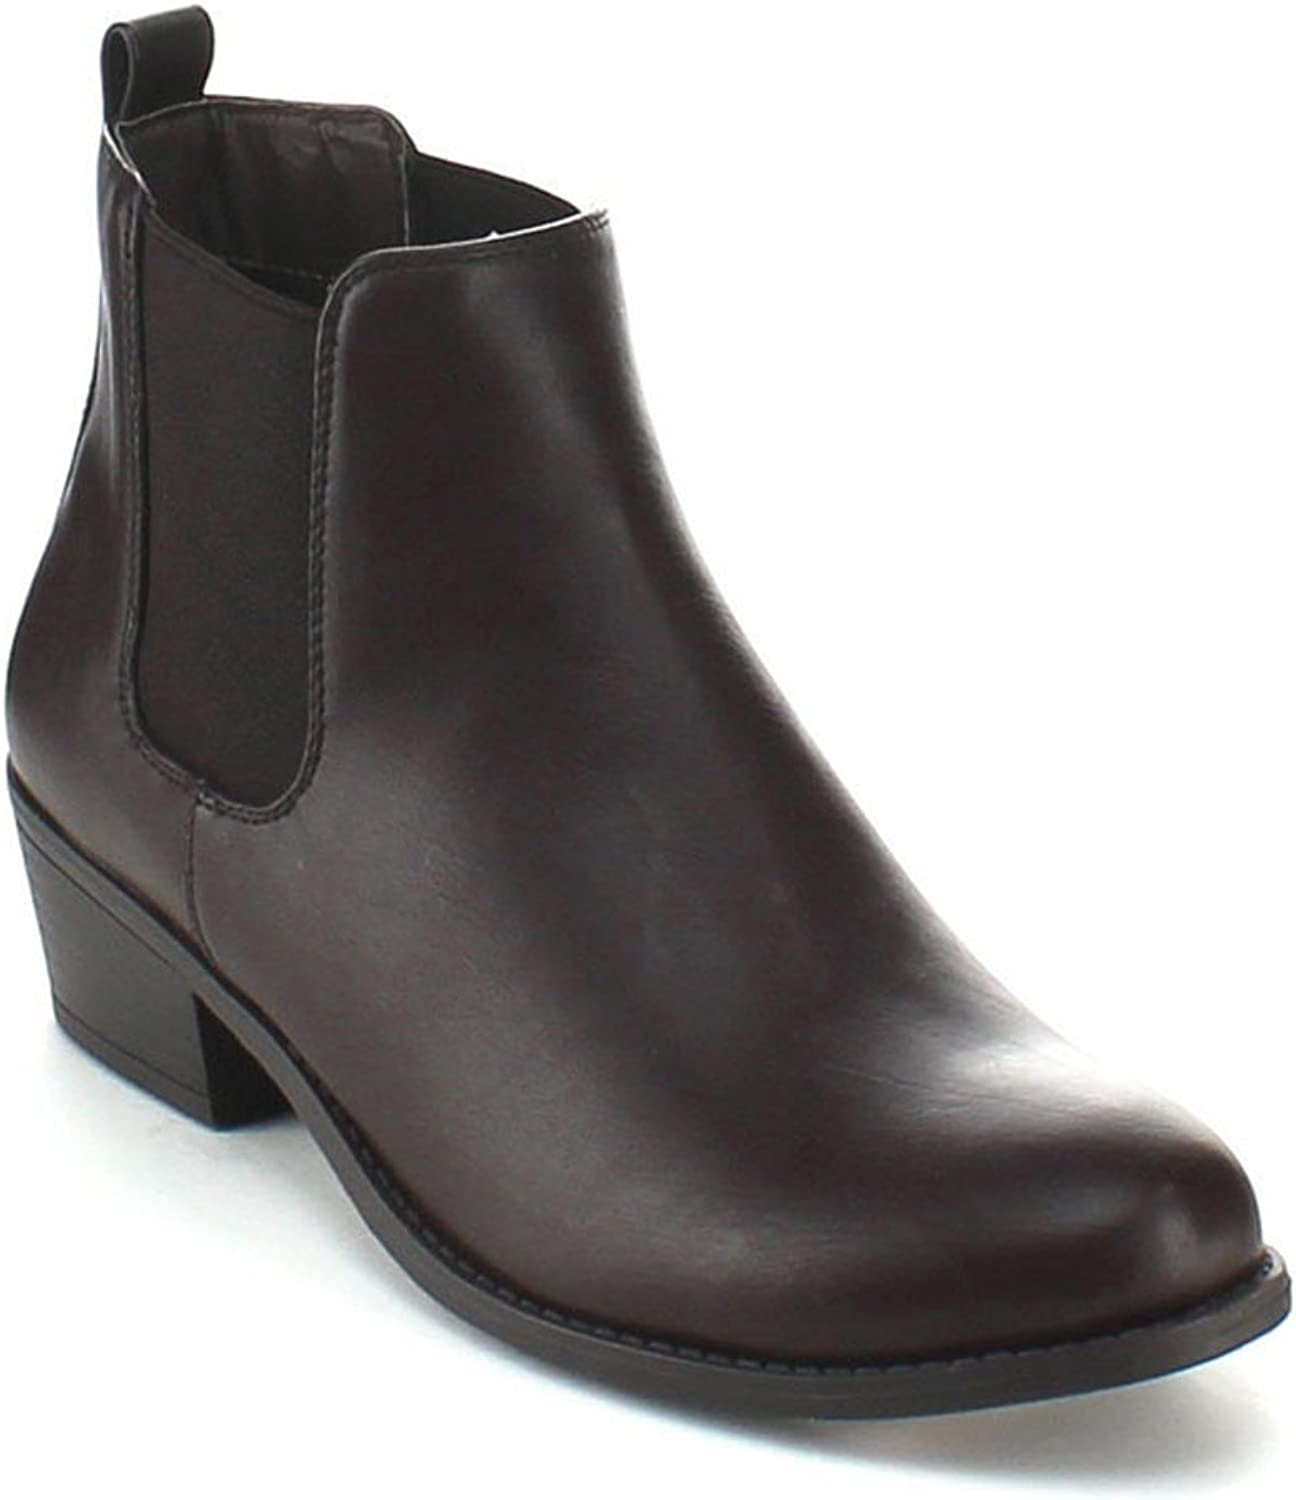 Women's Pull On Ankle Boots Ladies Low Chunky Heel Stylish Elastic Panel Riding Booties Slip On shoes